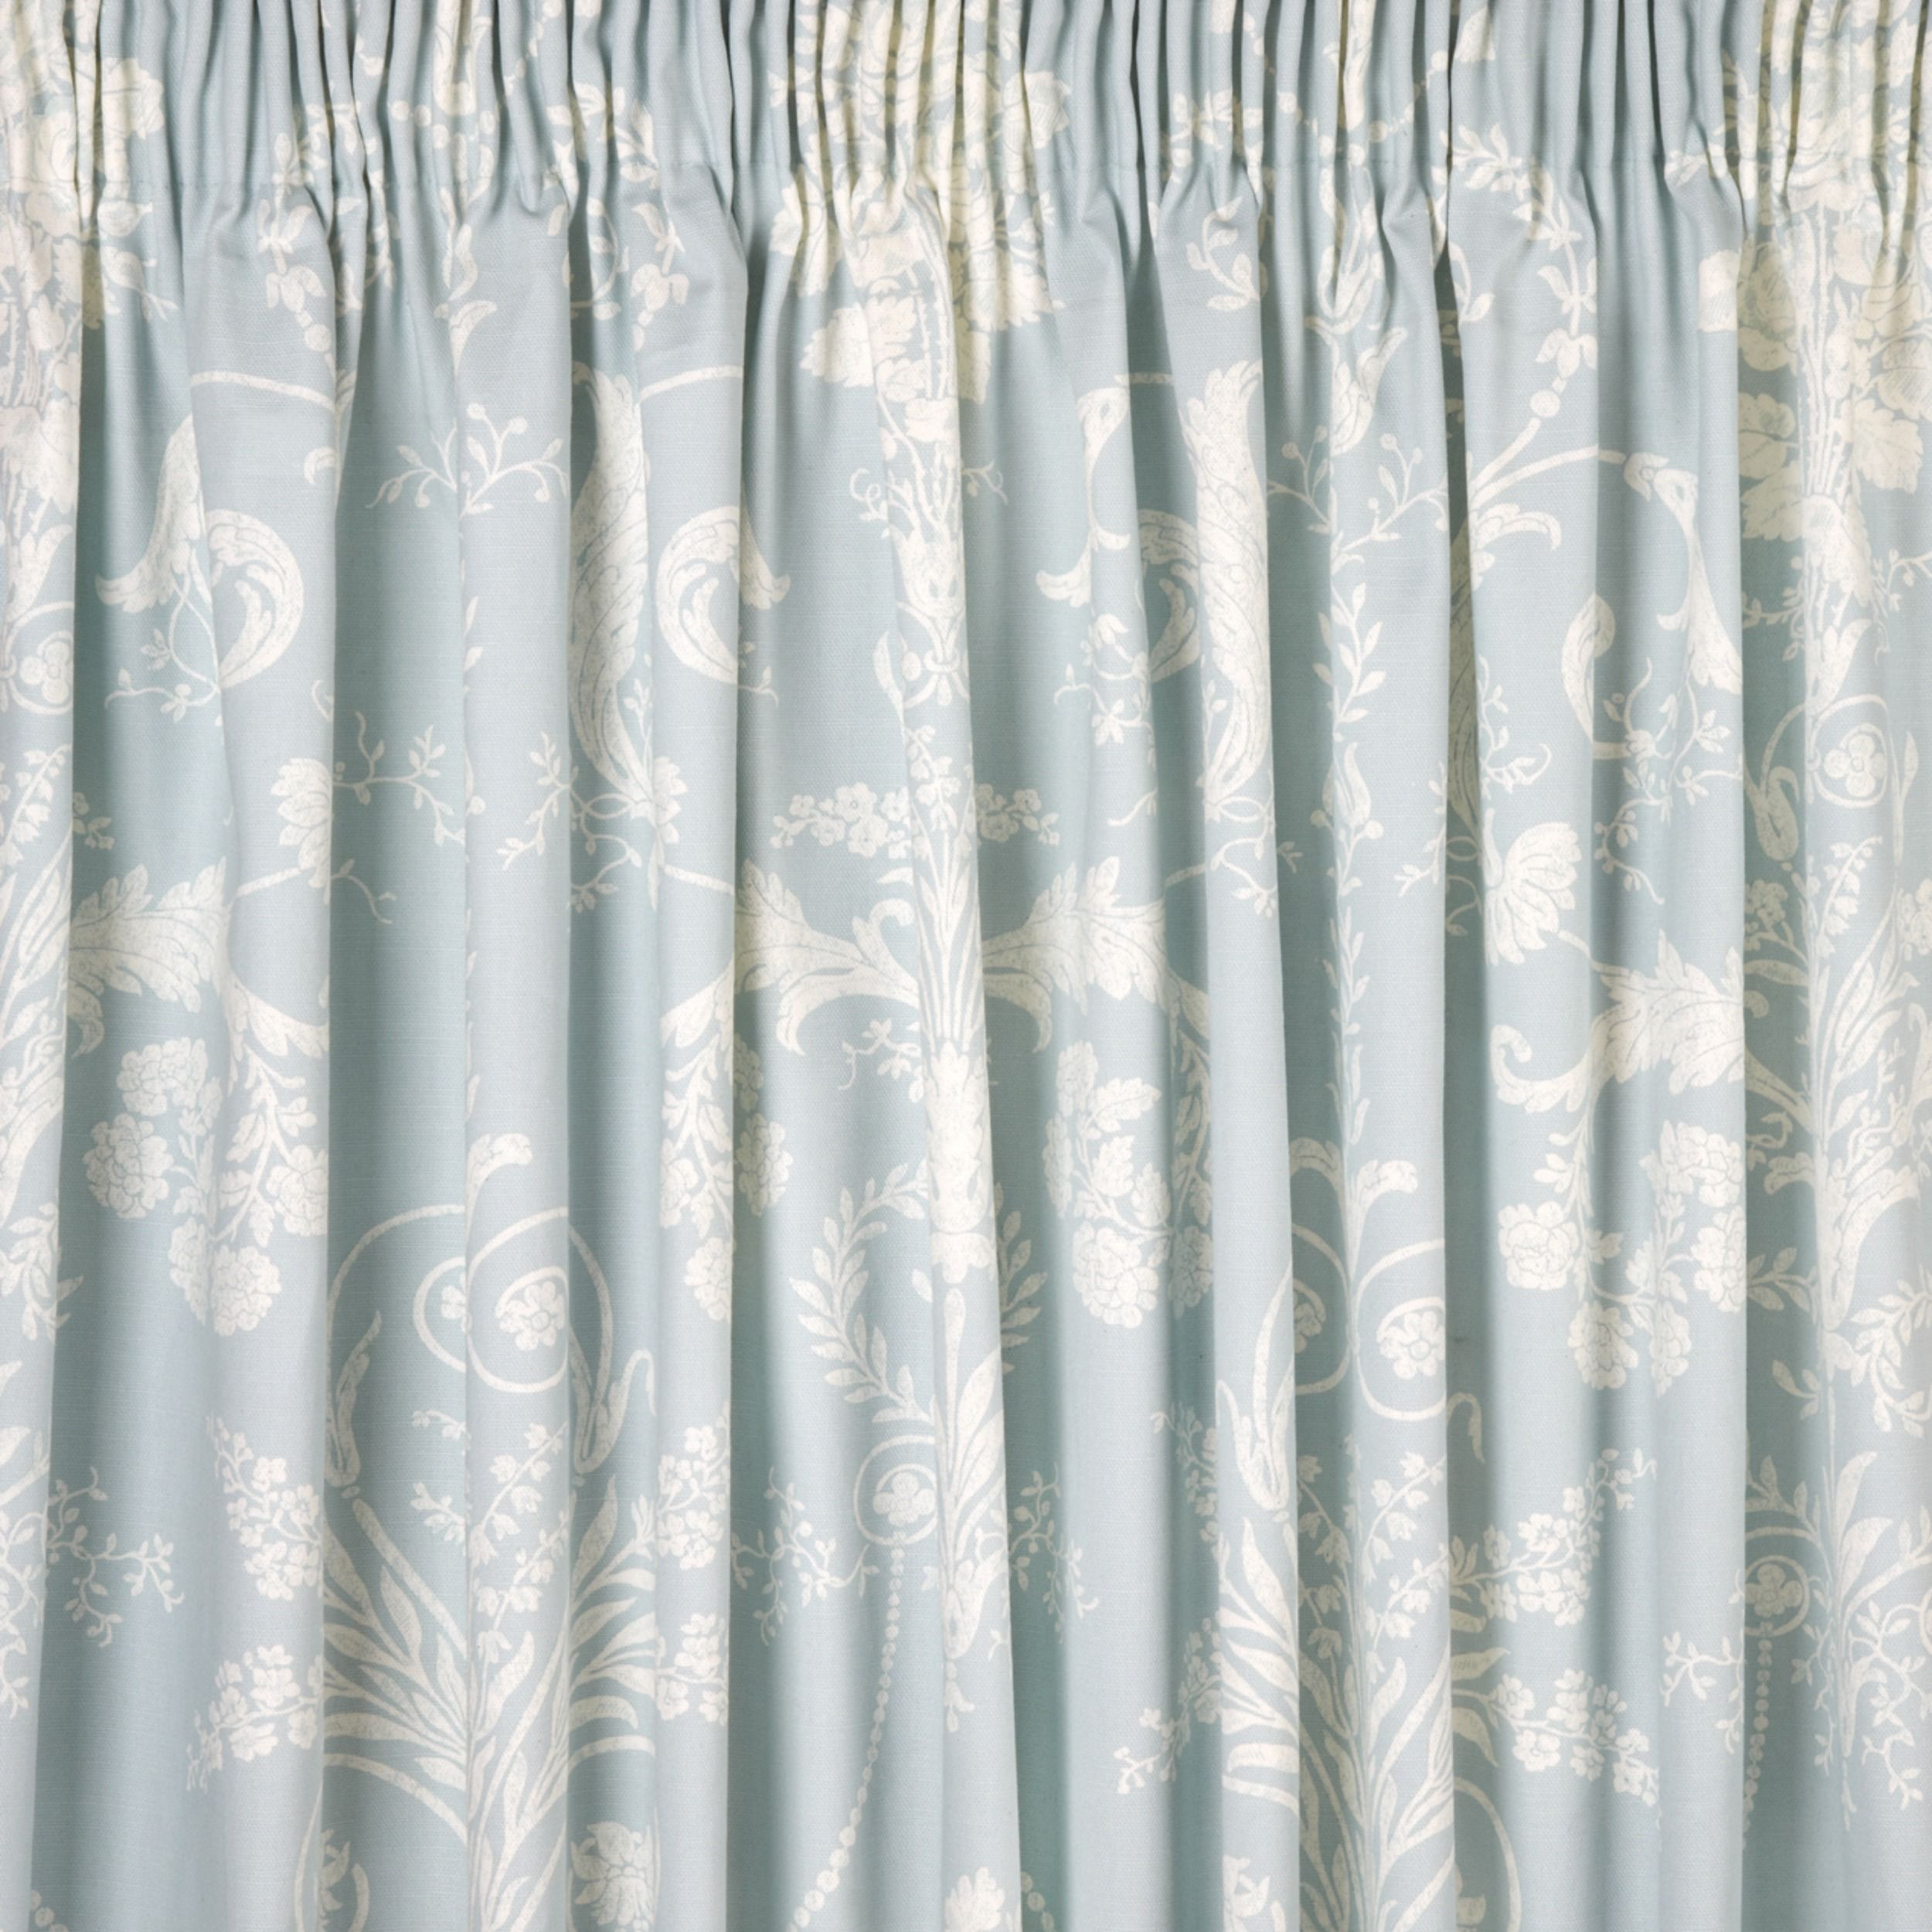 draperies curtain ready photo linen drapes unusual inside space belgian made of atticmag size textile curtains full inspirations